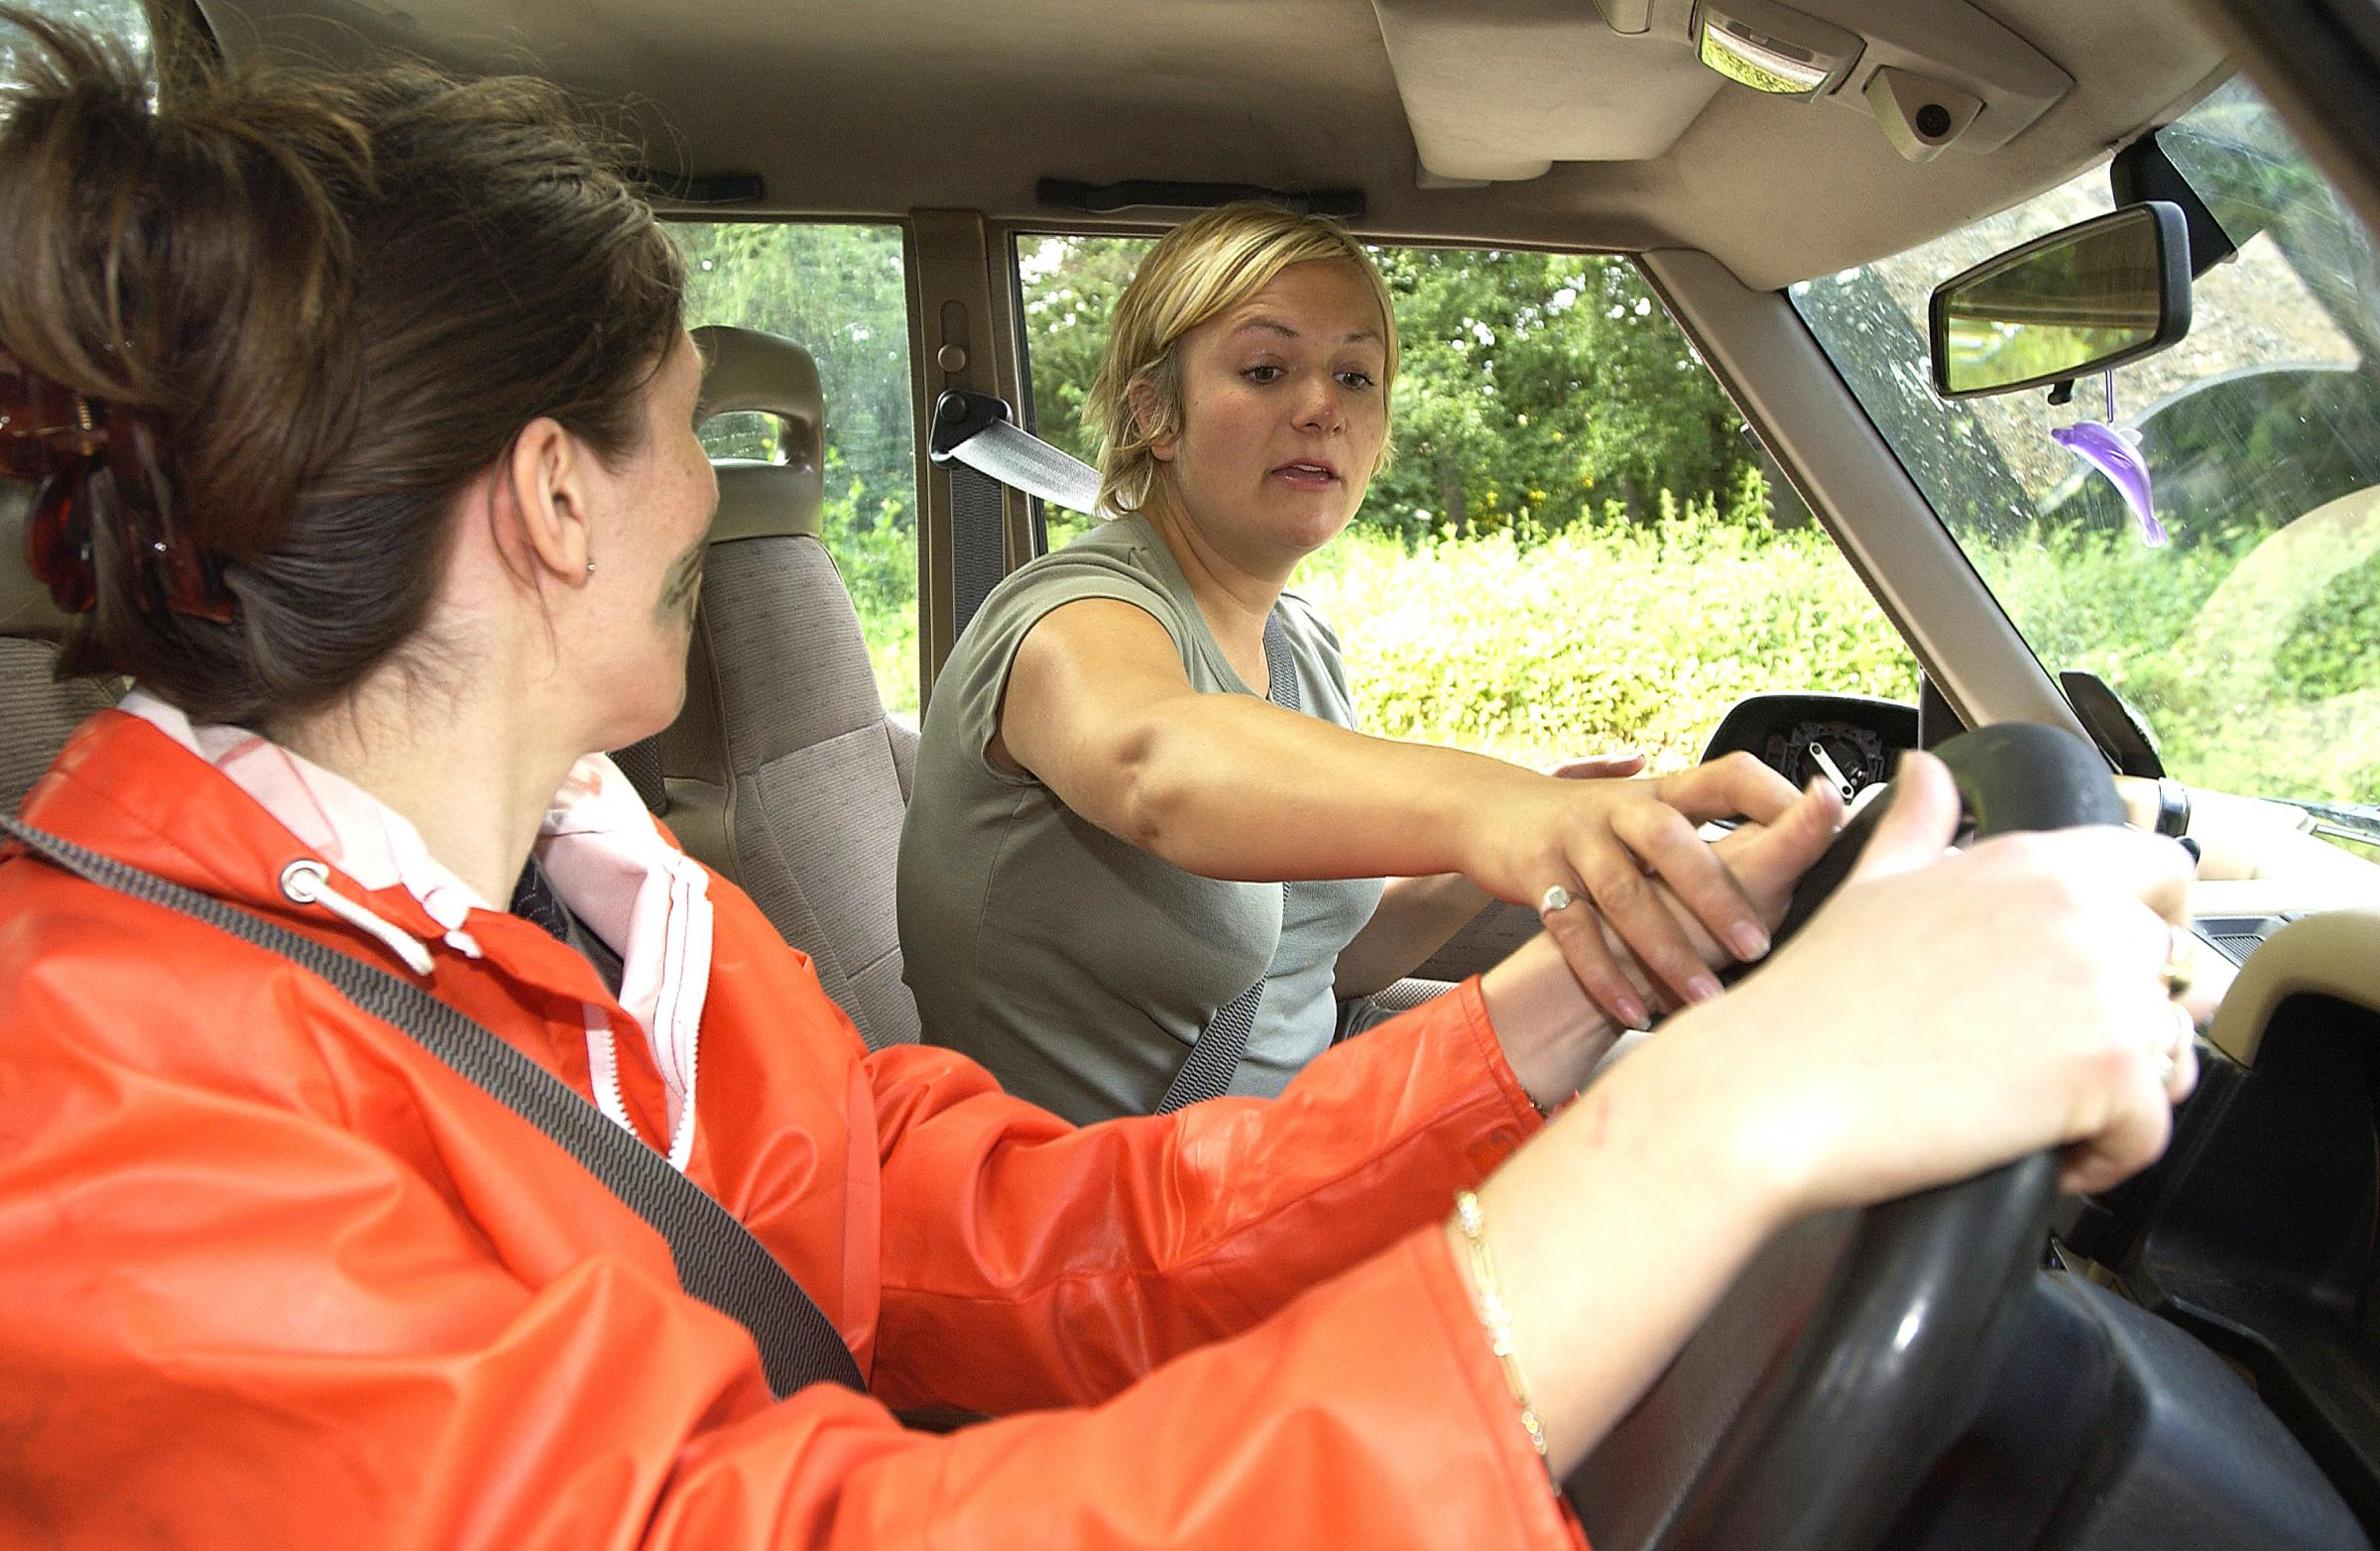 Rebecca Hoare, of the Parkwood 4x4 centre in Tong, giving instruction to reporter Sally Clifford for a feature published in the T&A in 2007